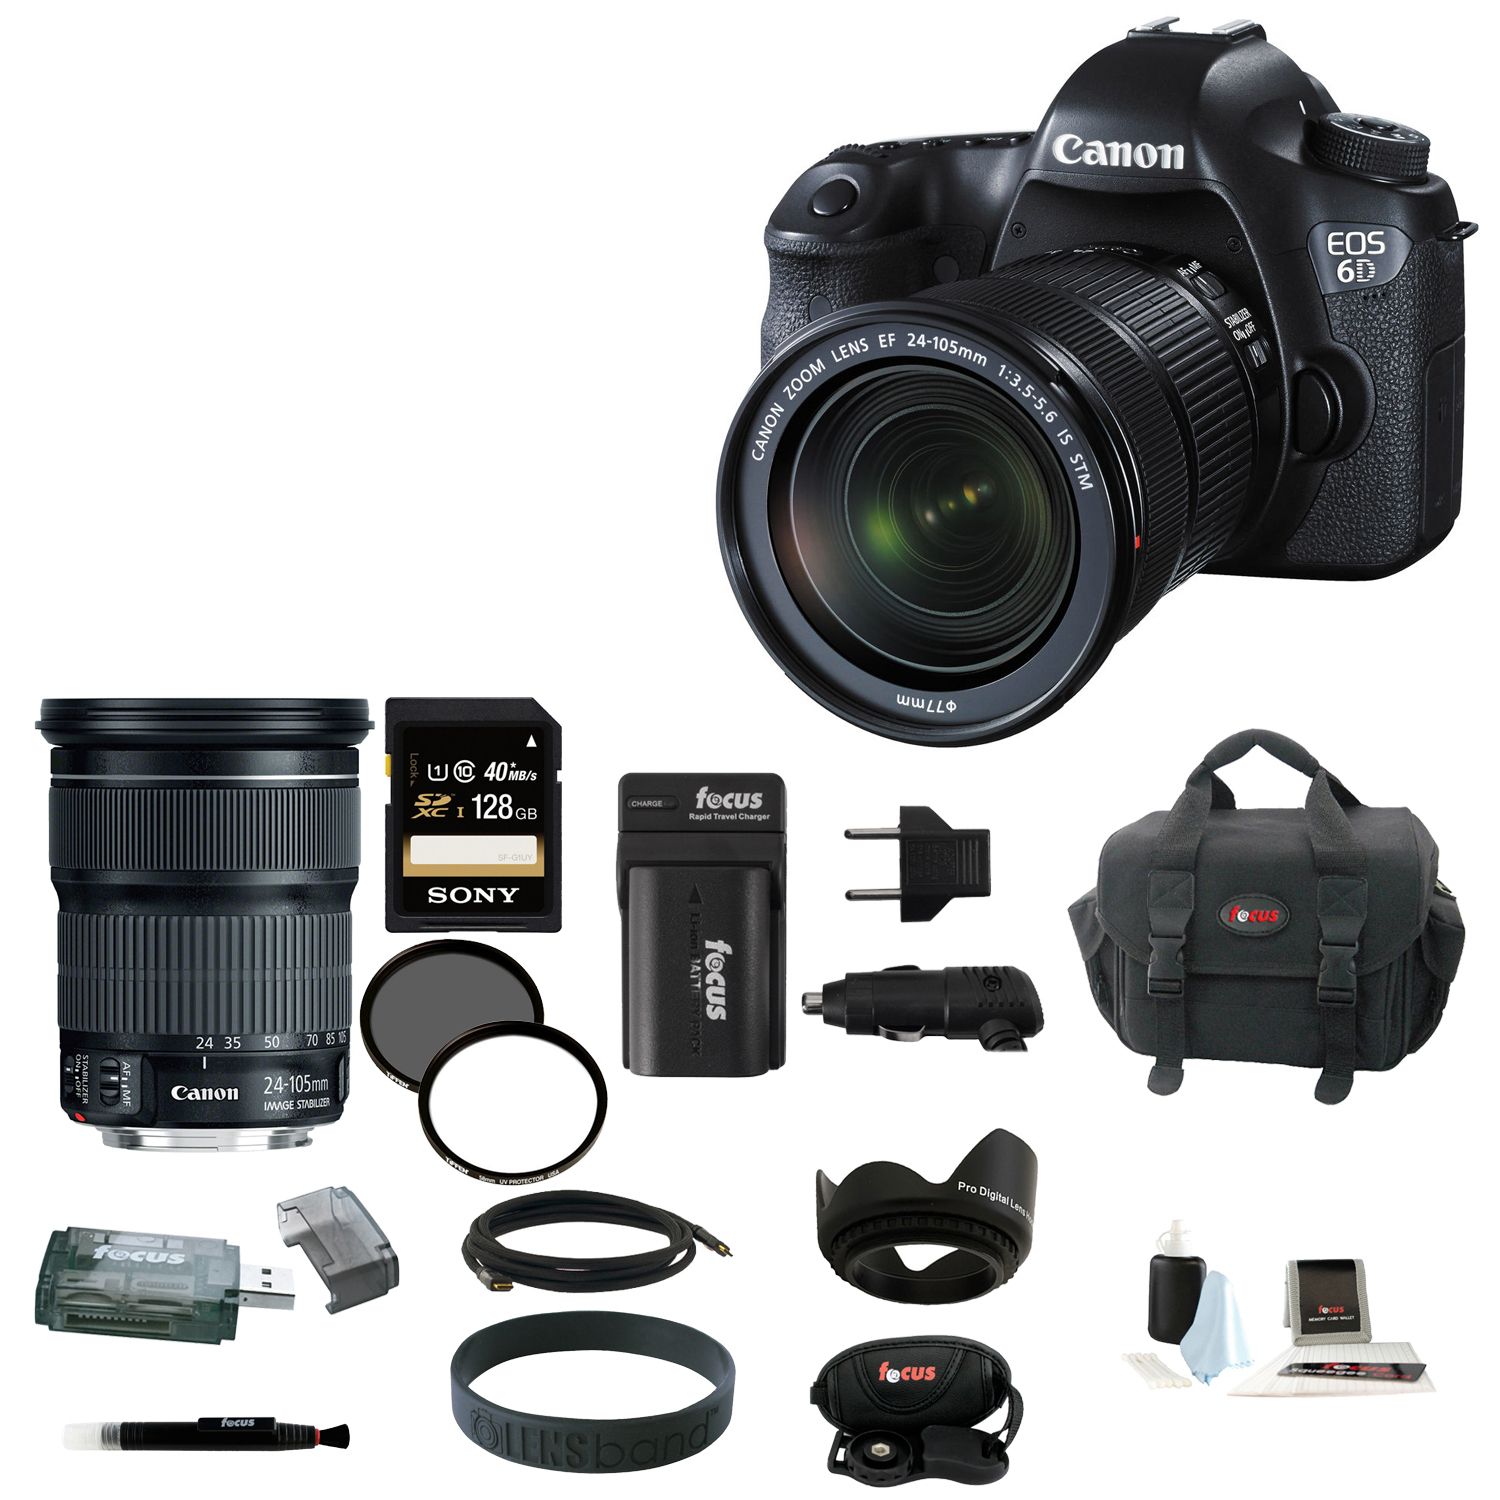 Canon EOS 6D 20.2MP Full Frame DSLR with EF 24-105mm IS STM Lens + 128GB Deluxe Accessory Kit